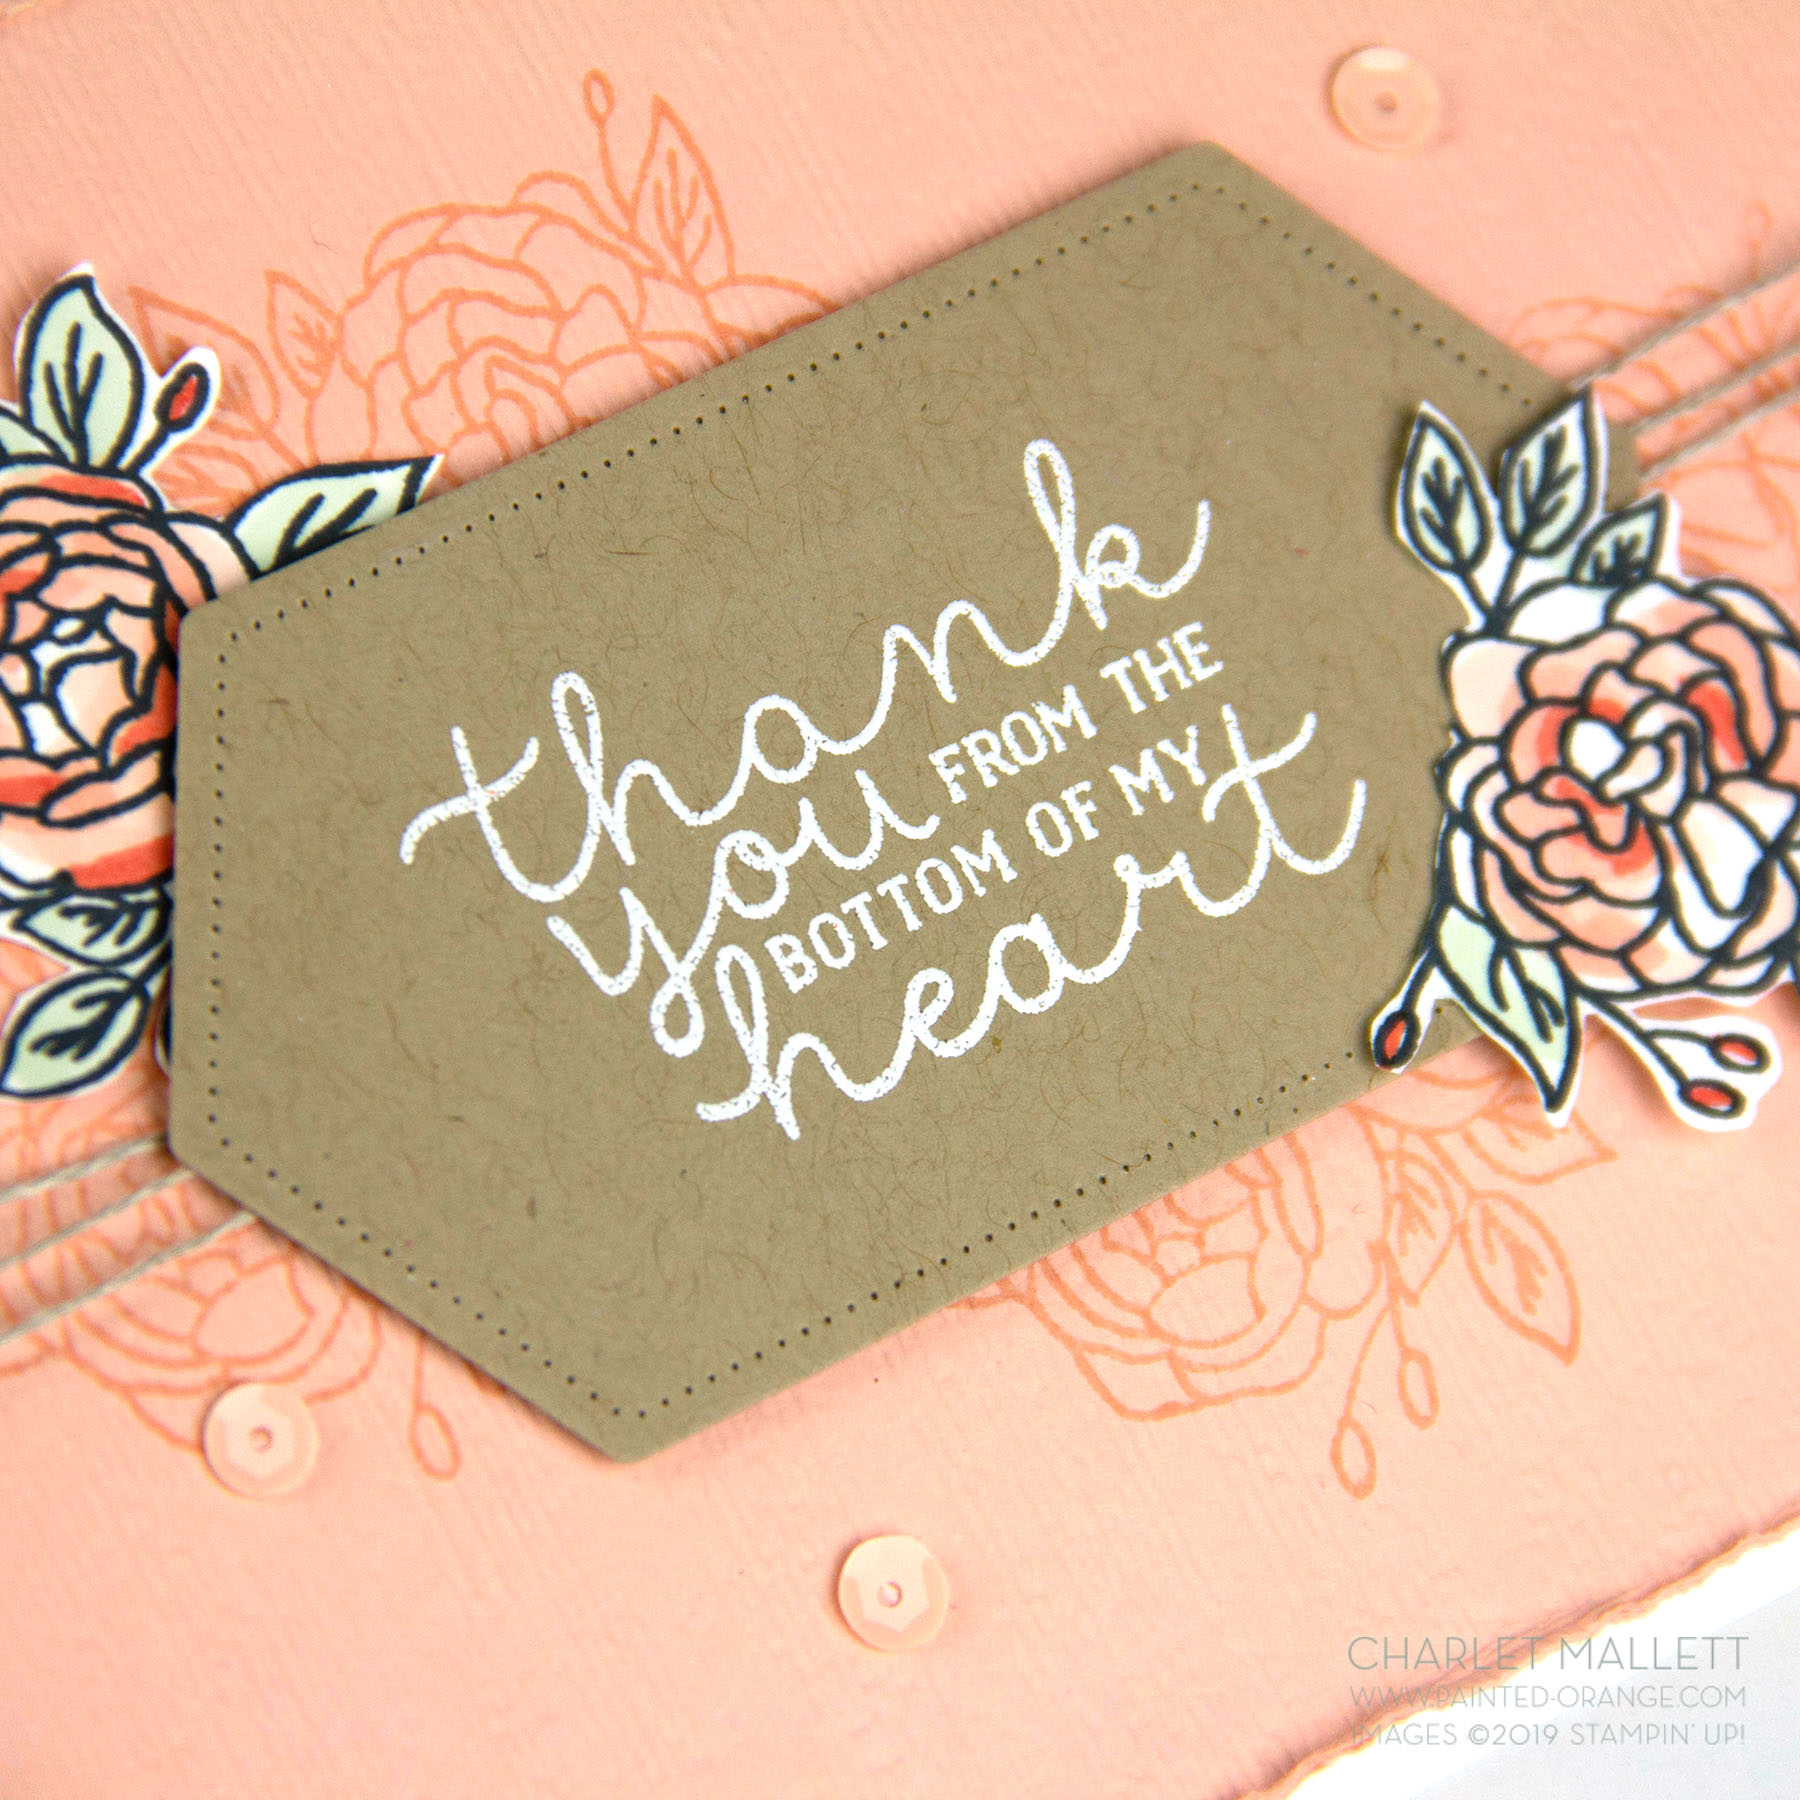 Bloom & Grow Thank You card - Charlet Mallett, Stampin' Up!